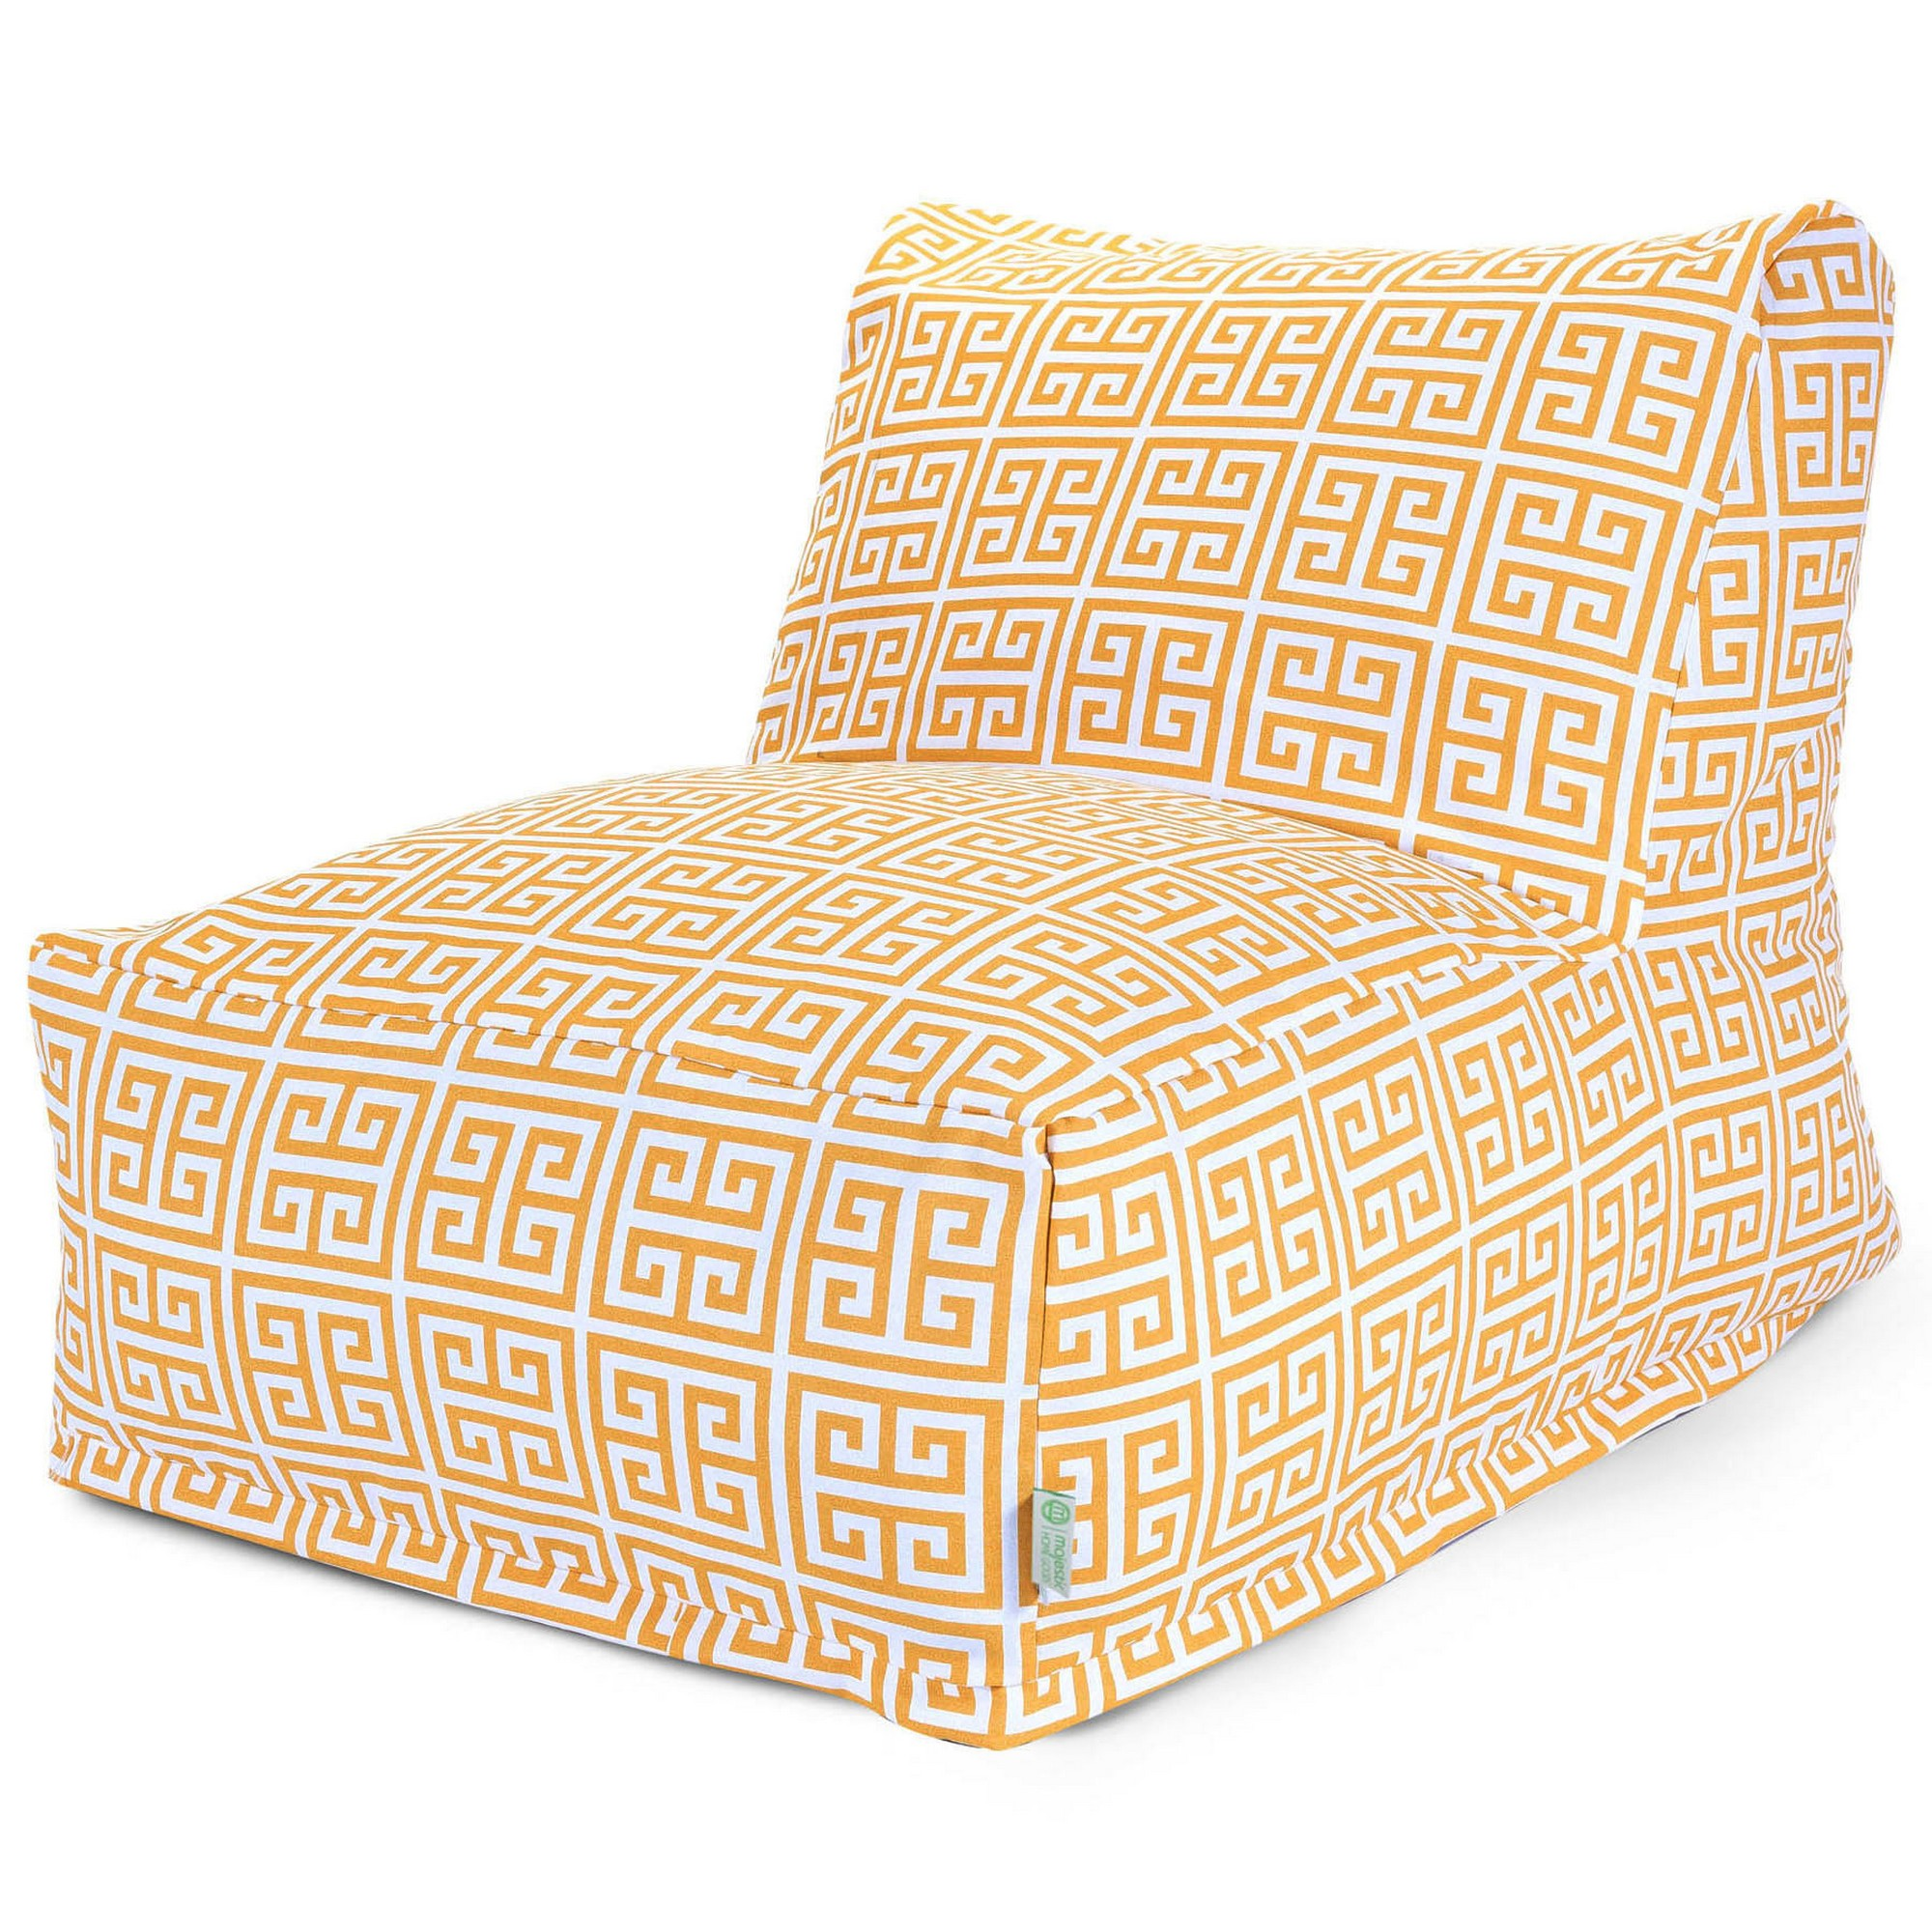 Majestic Home Goods Indoor Outdoor Citrus Towers Chair Lounger Bean Bag 36 in L x 27 in W x 24 in H